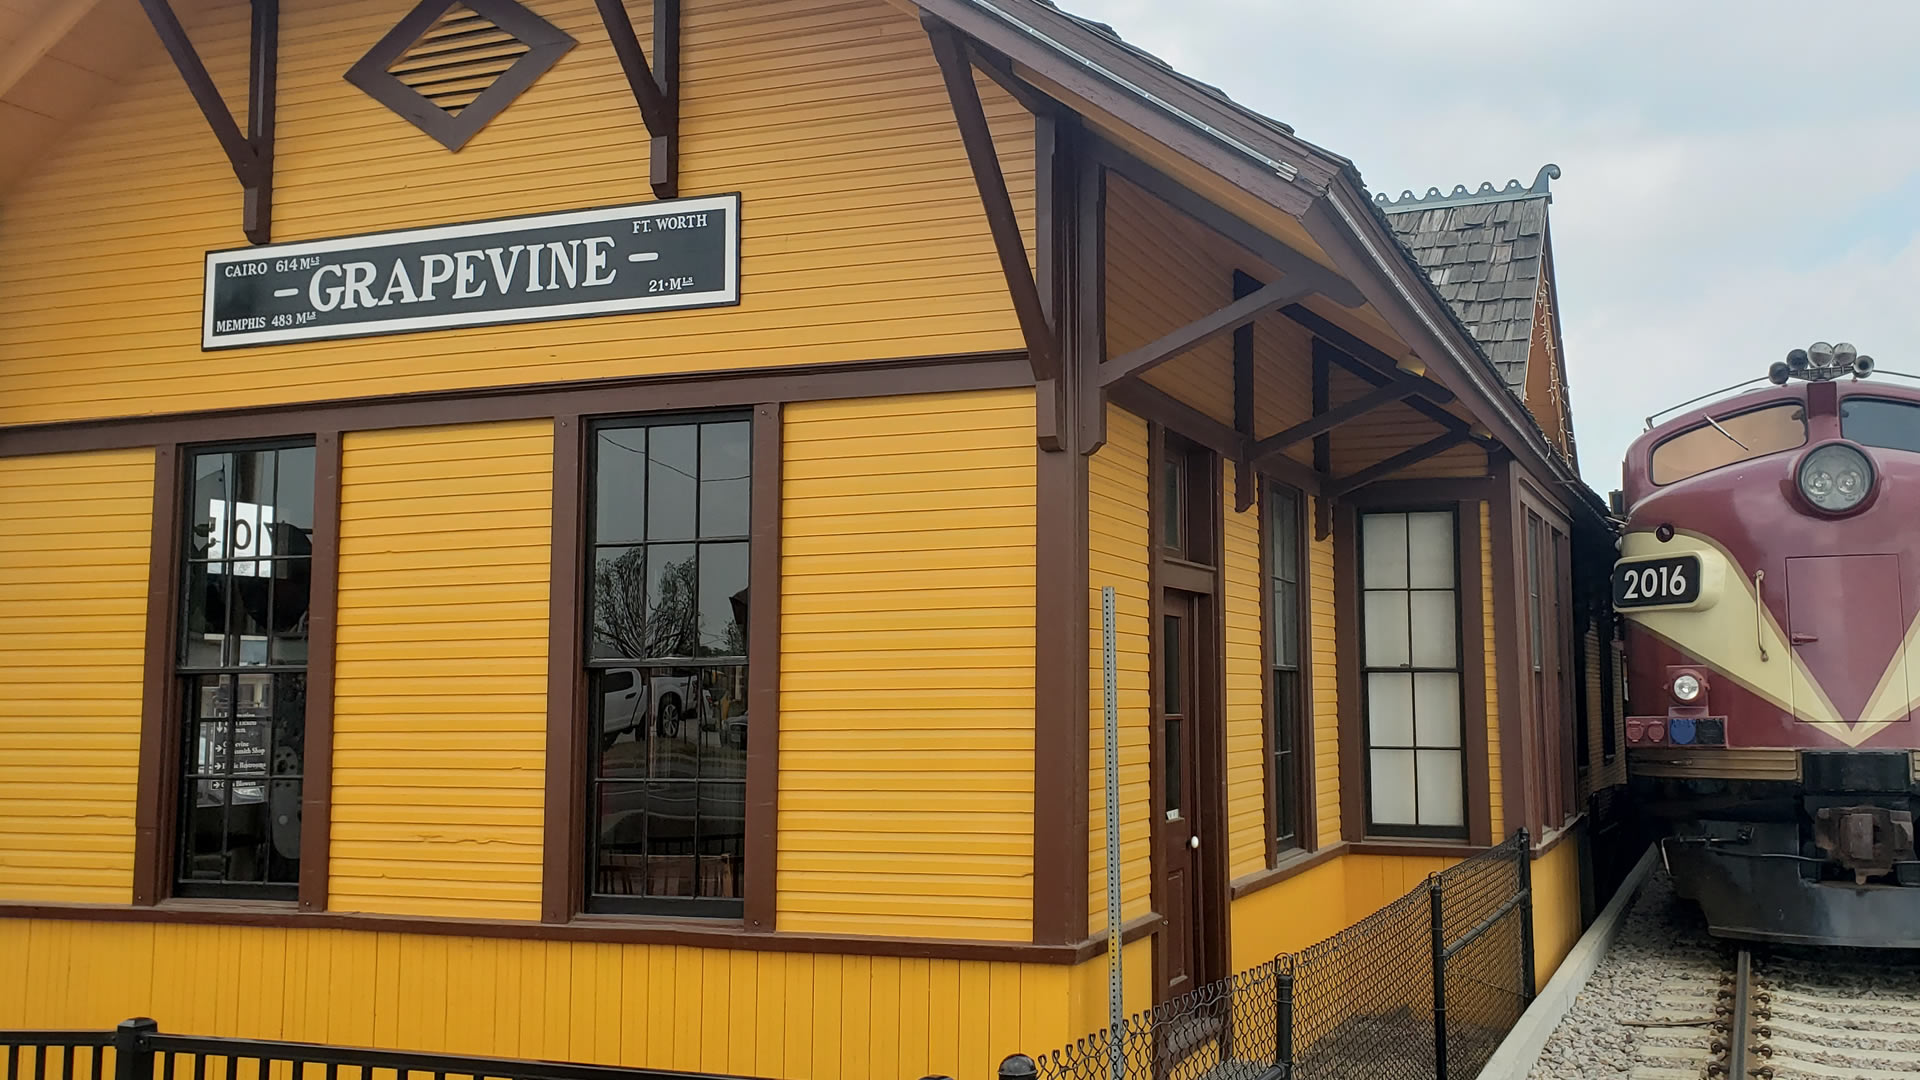 Grapevine Sightseeing and Wine Trail Tour